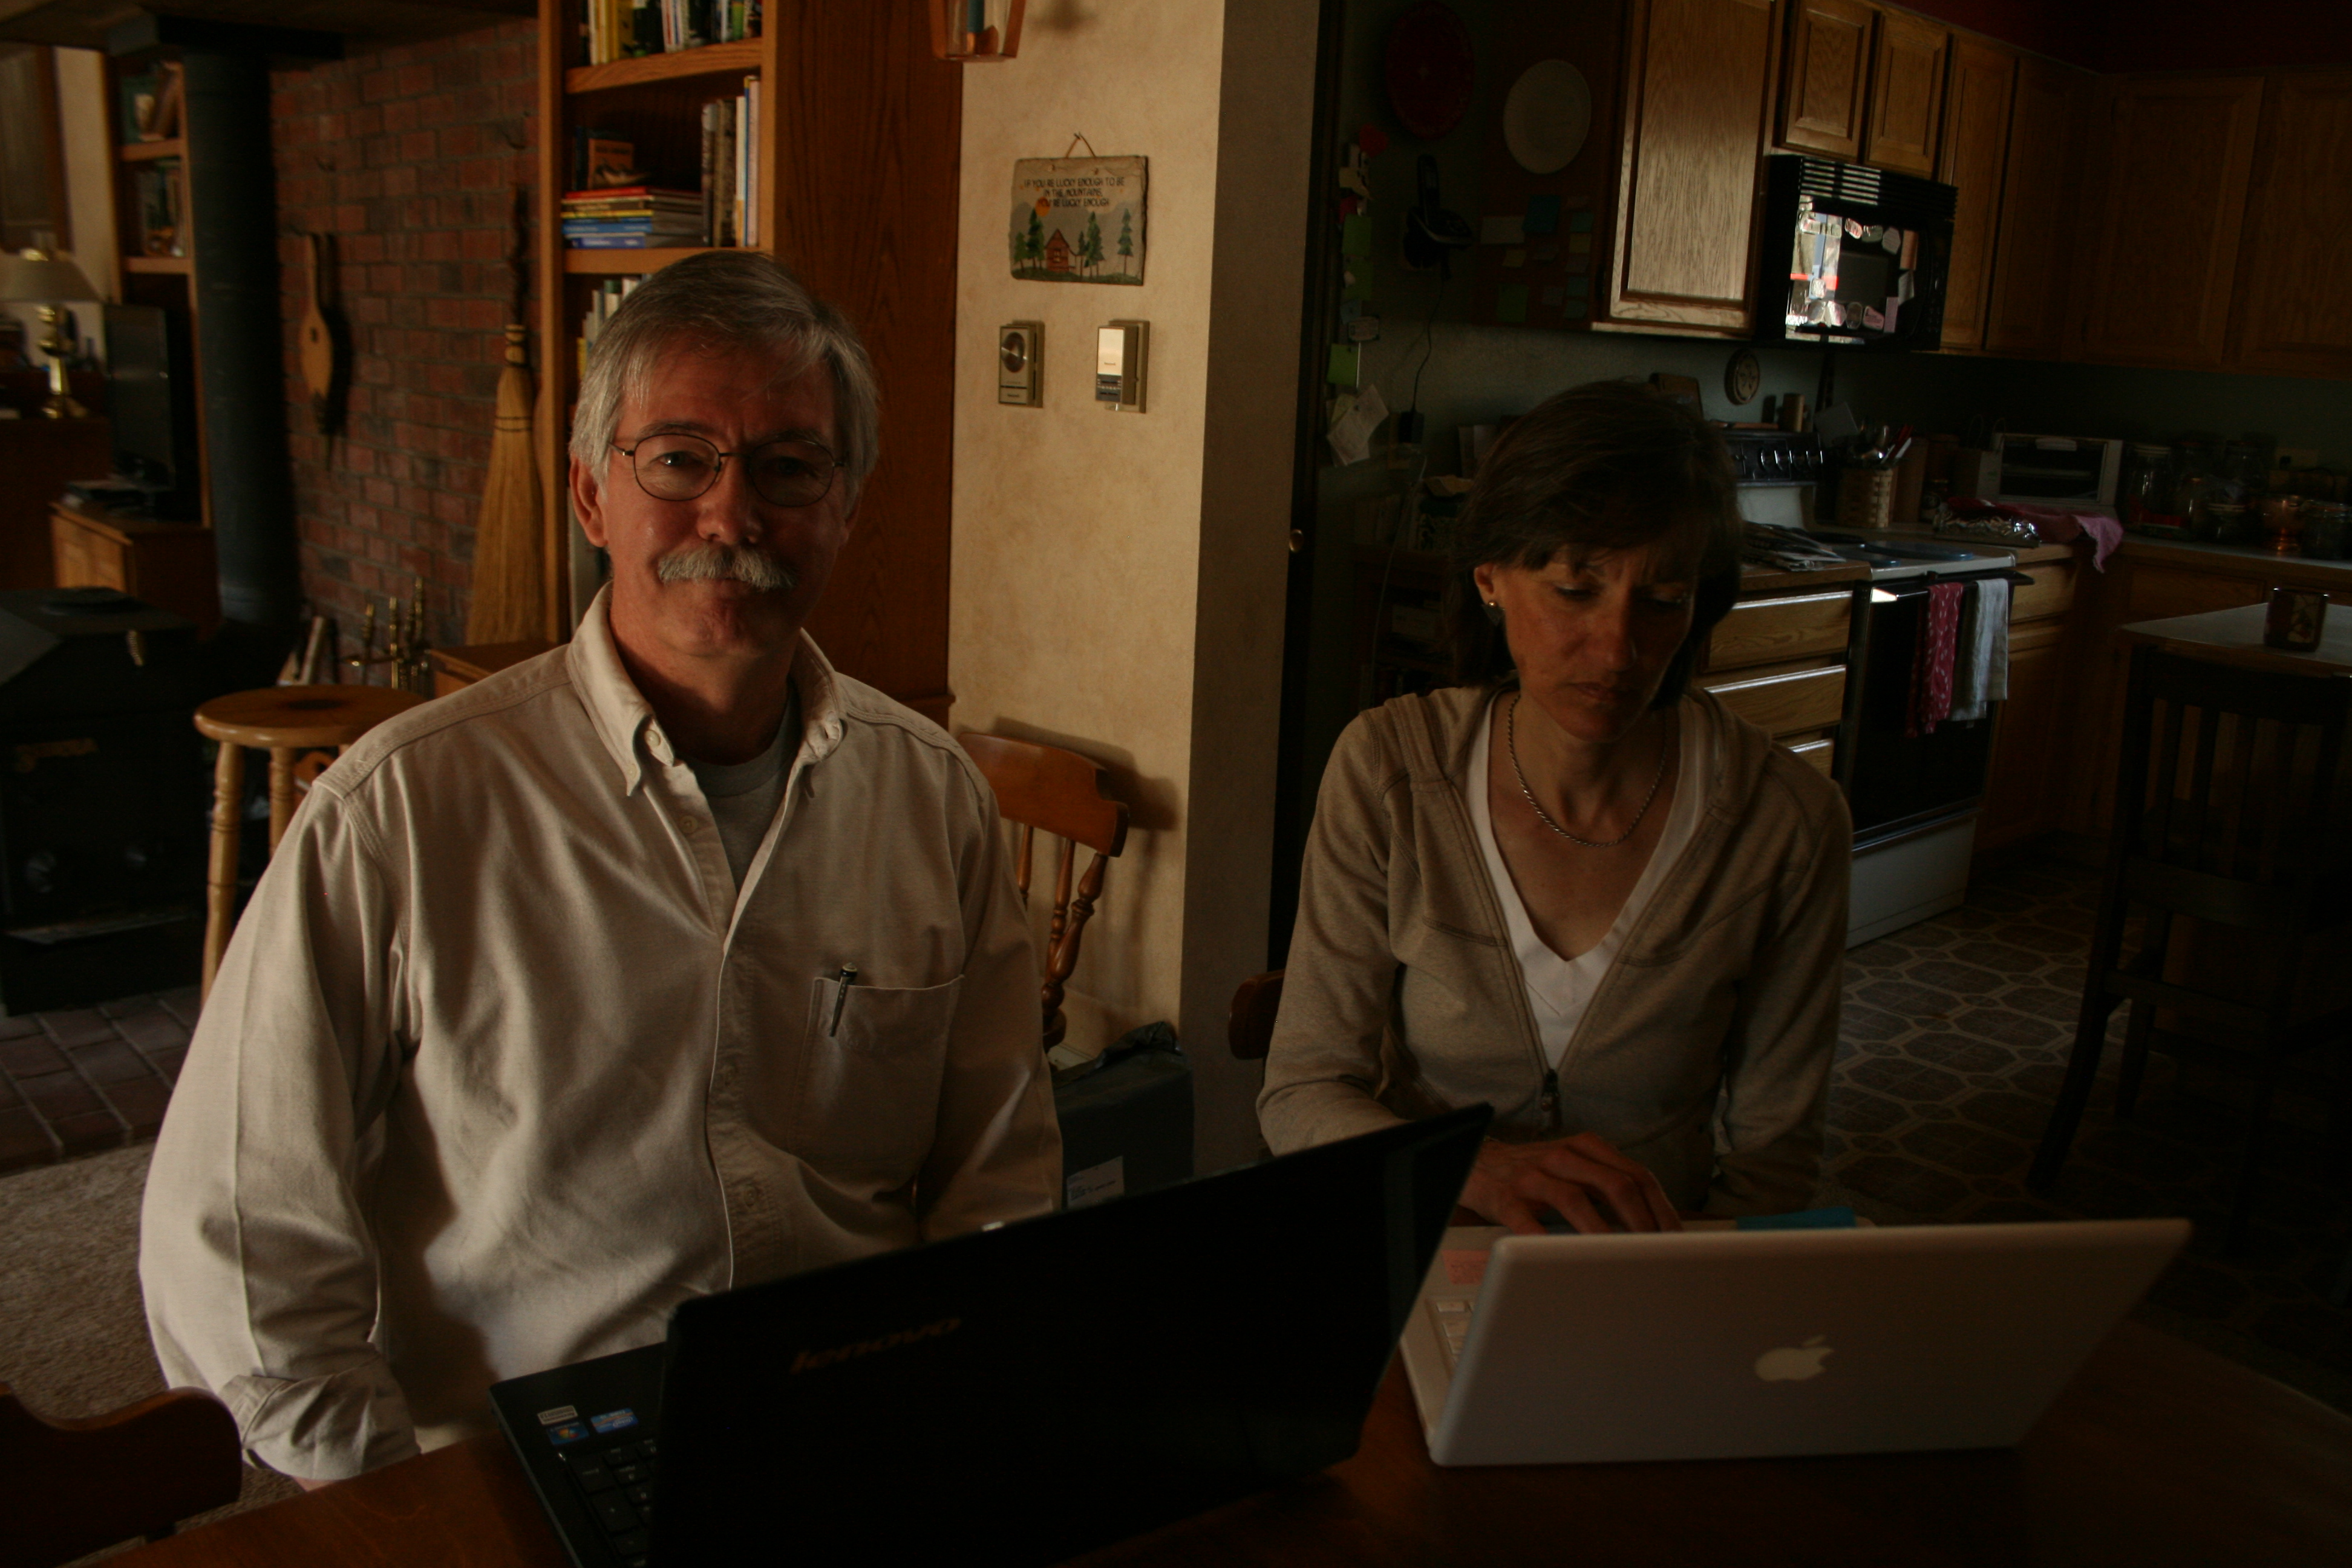 <p>Tammy and Mike Story have lived in the foothills outside Denver for nearly 30 years. The couple loves where they live but find it frustrating not to have a reliable Internet connection.</p>